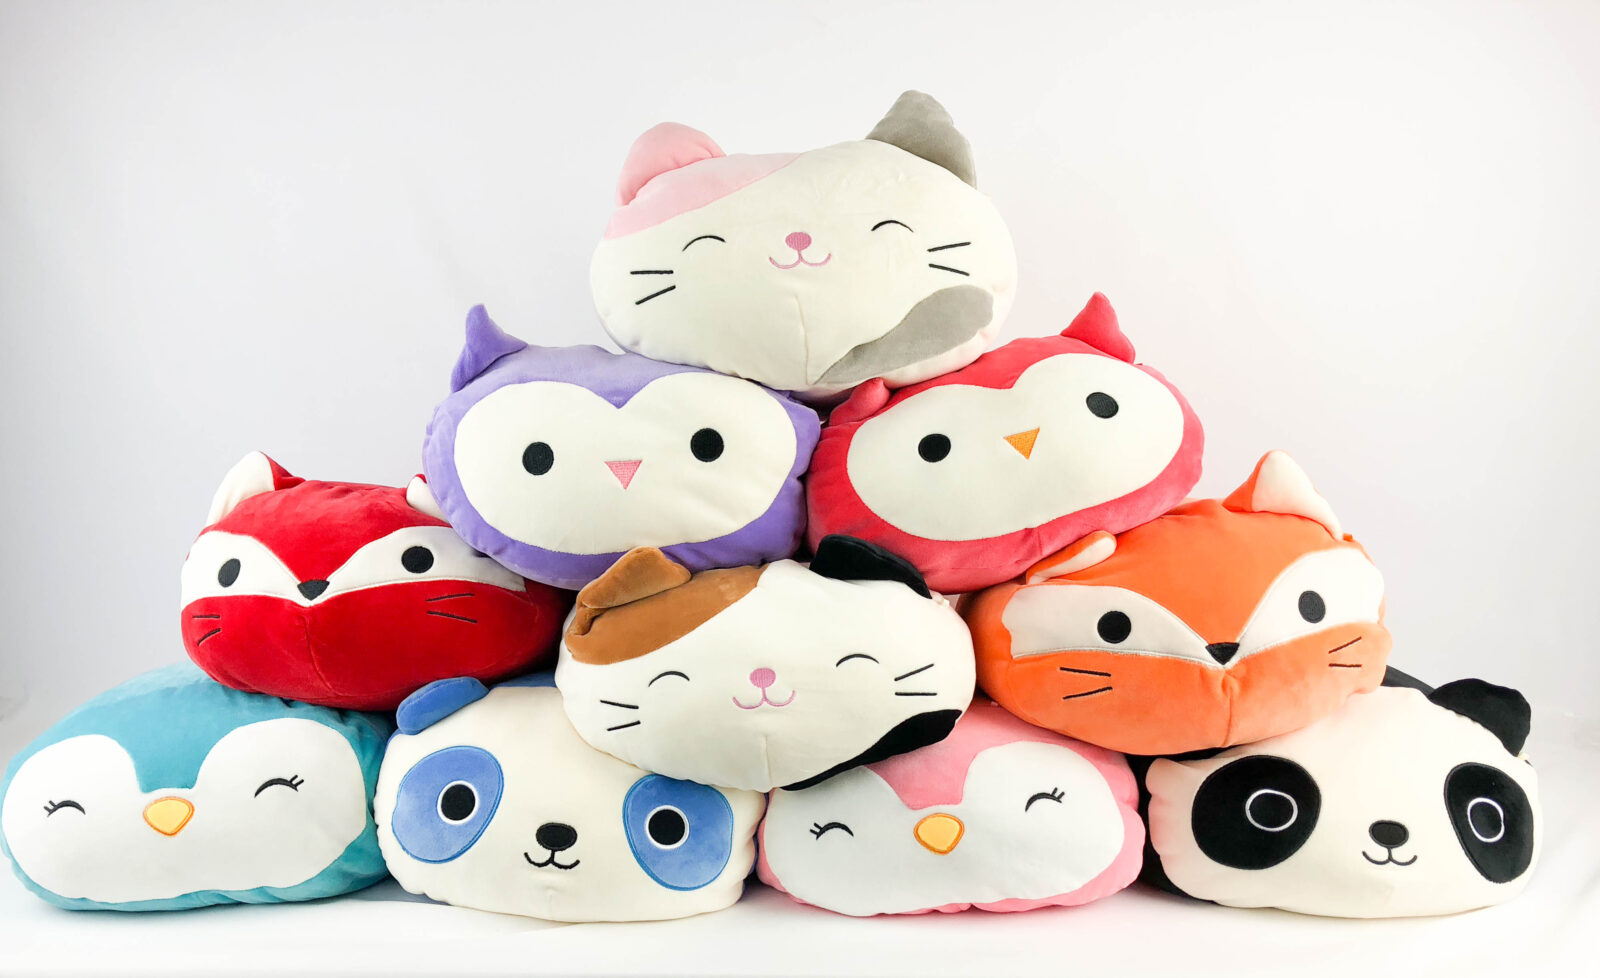 A picture of stackable Squishmallow cuddly toys